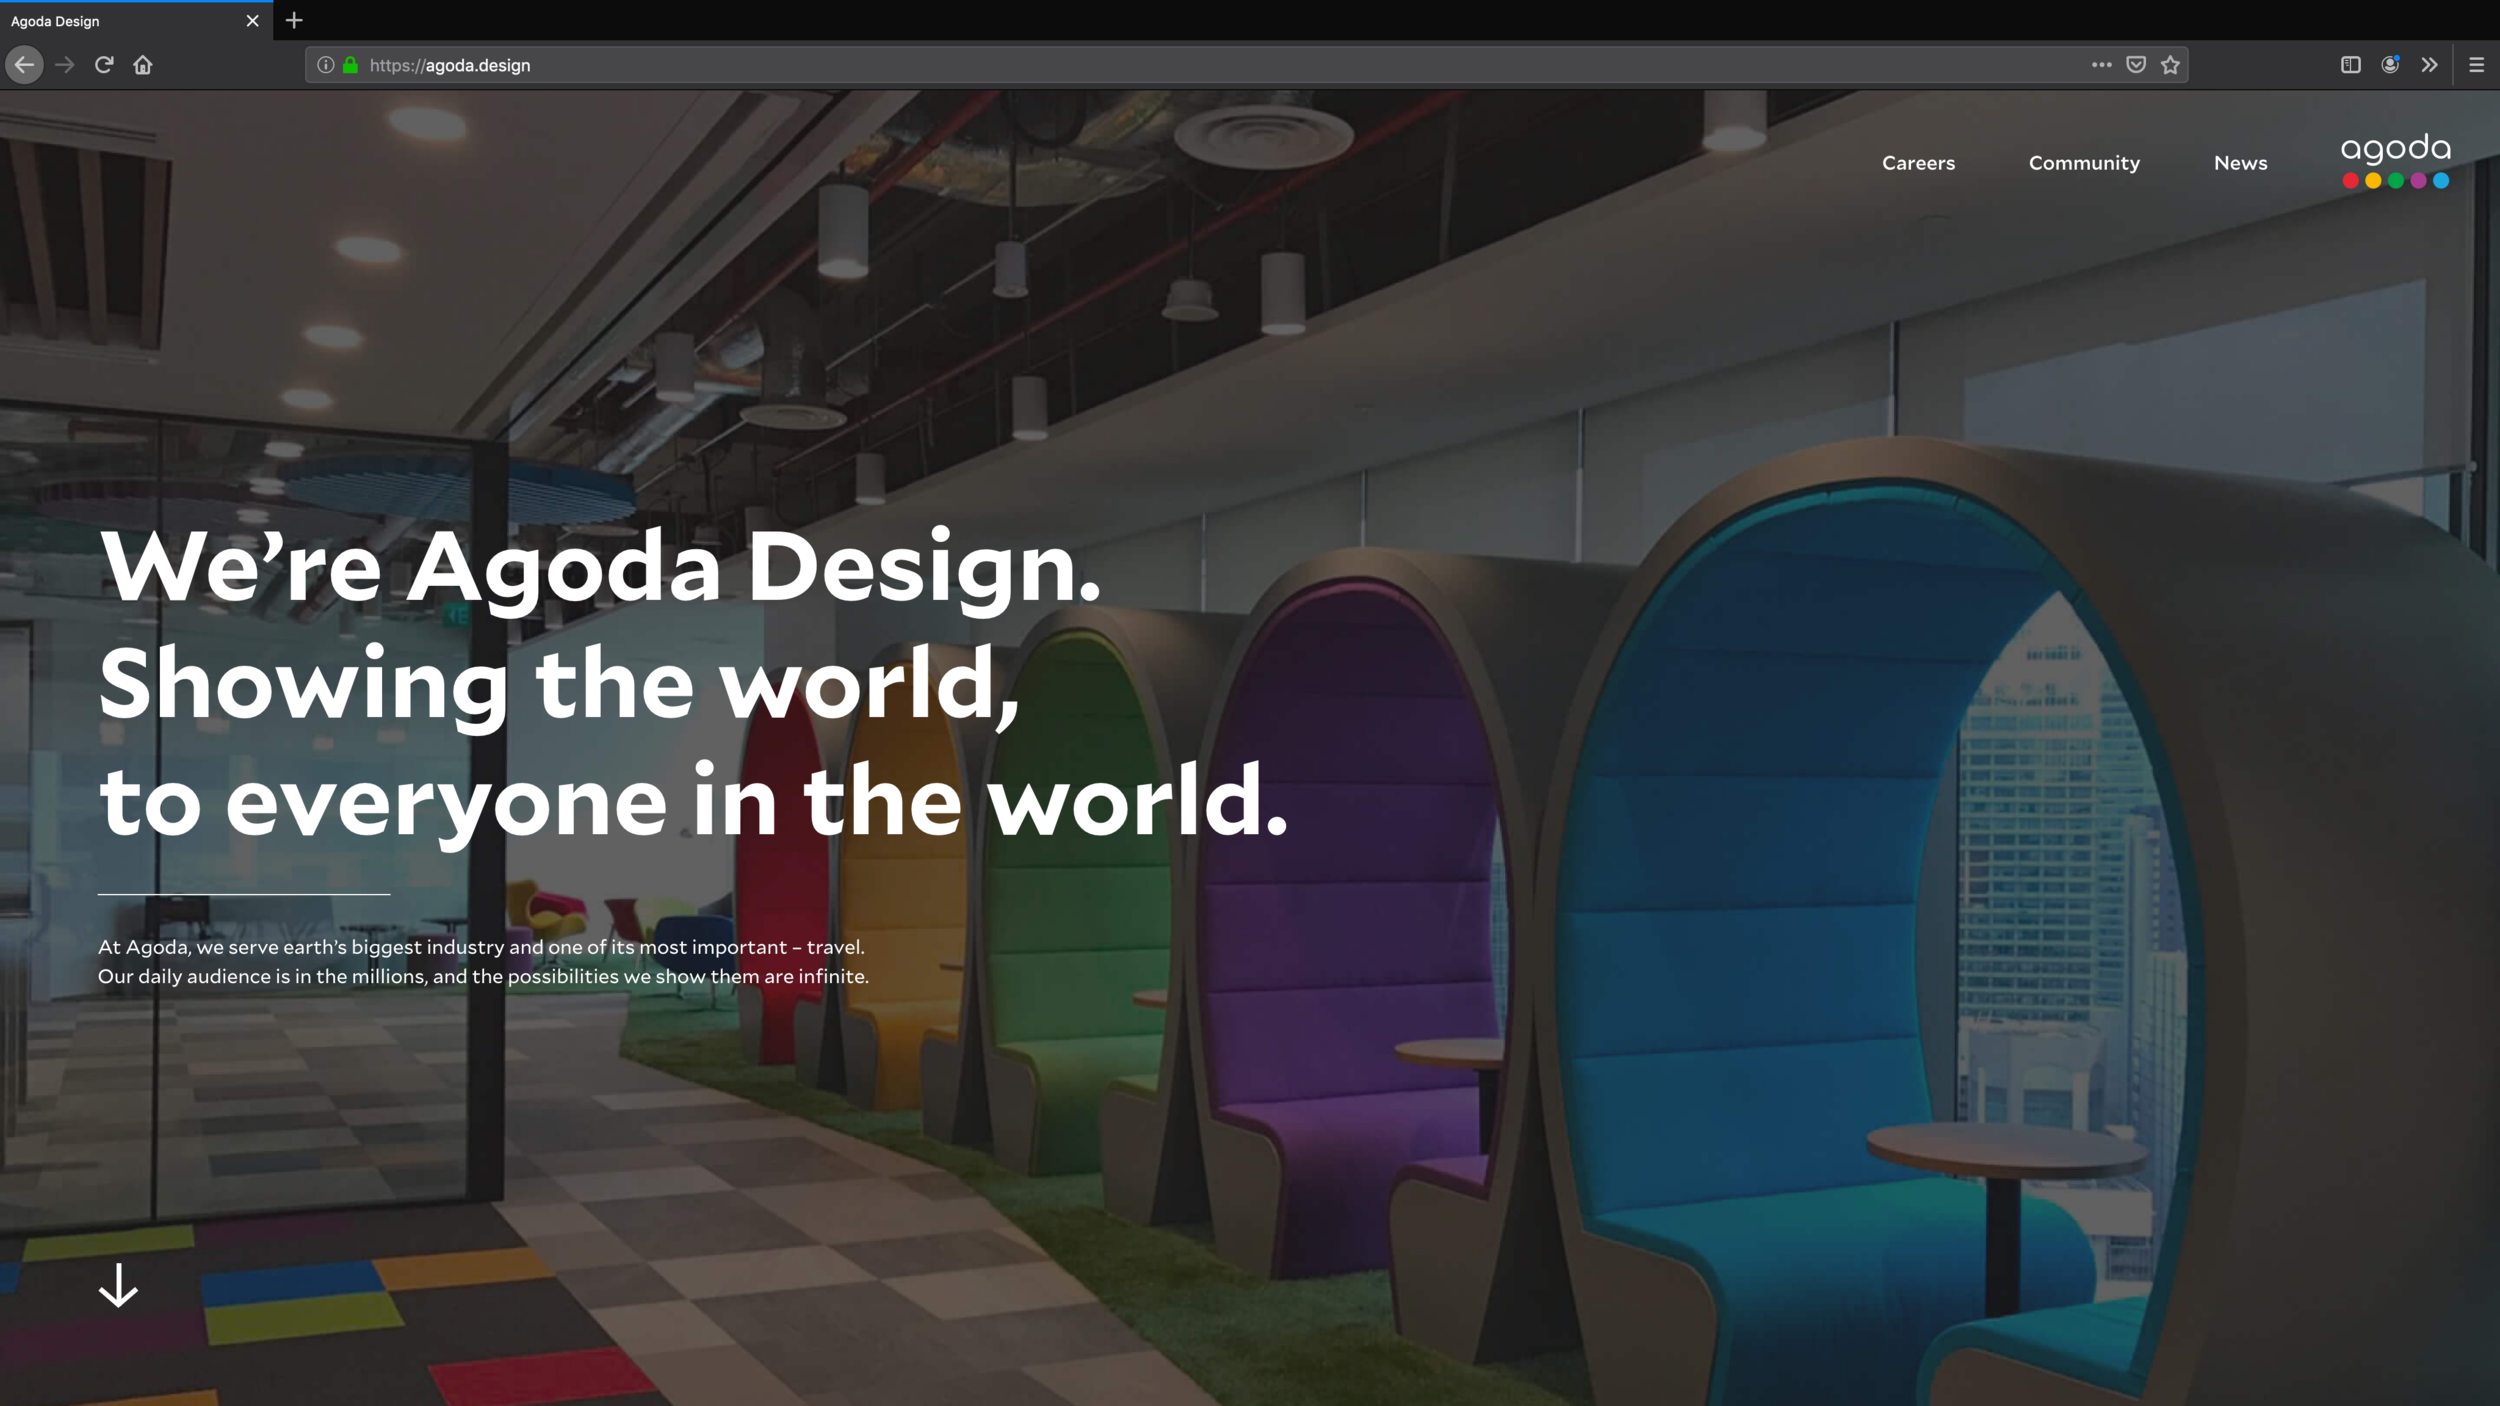 The site moved from agodadesign.com to agoda.design and was already full of content and engaging from the start.